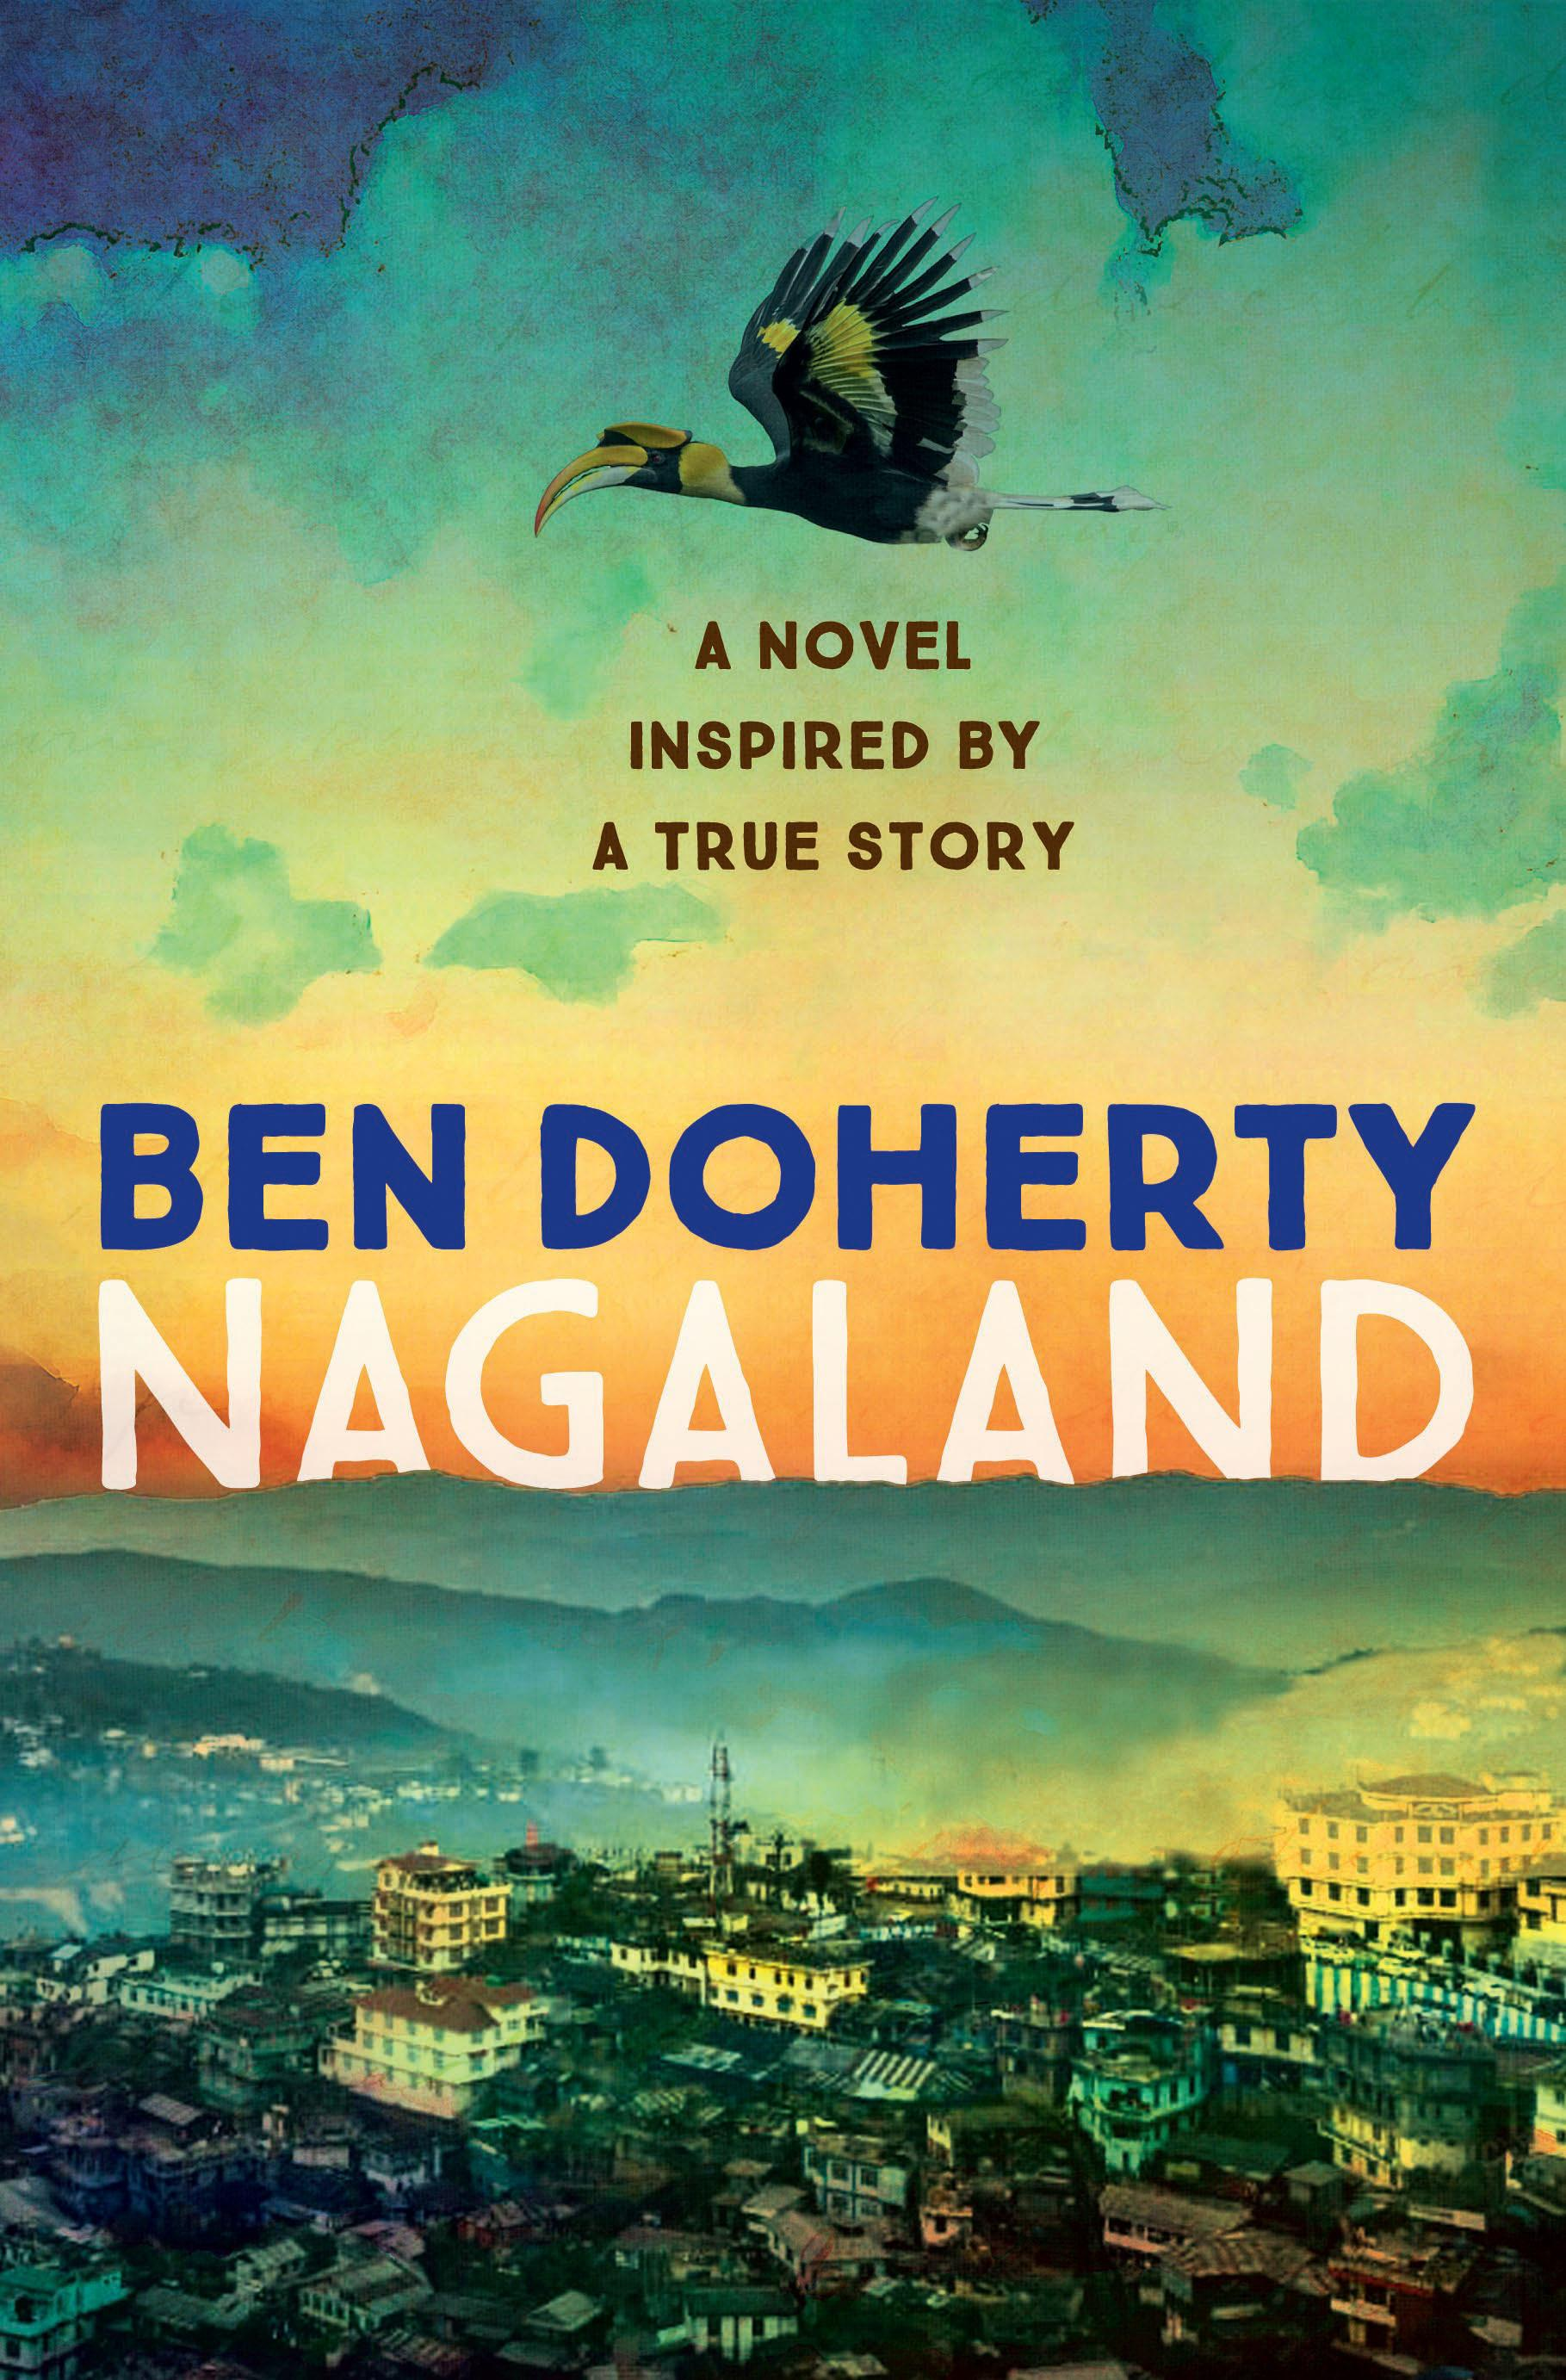 Nagaland by Ben Doherty